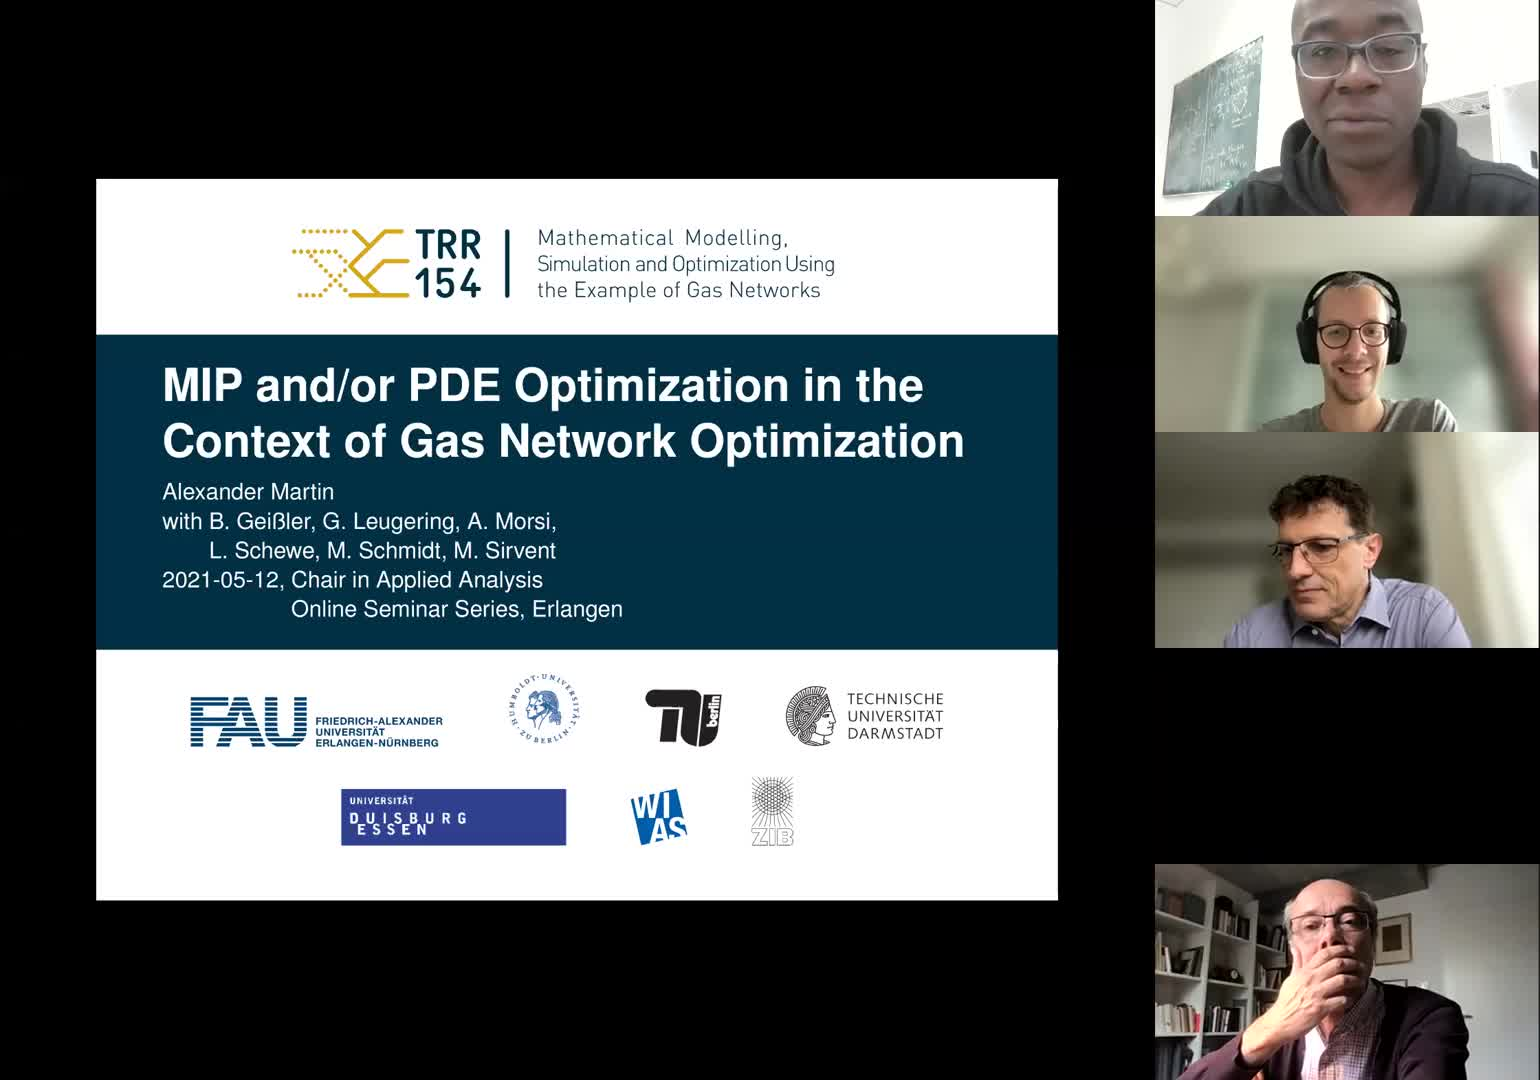 MIP and/or PDE optimization in the context of gas network optimization (A. Martin, FAU, Fraunhofer Institute IIS,  Germany) preview image